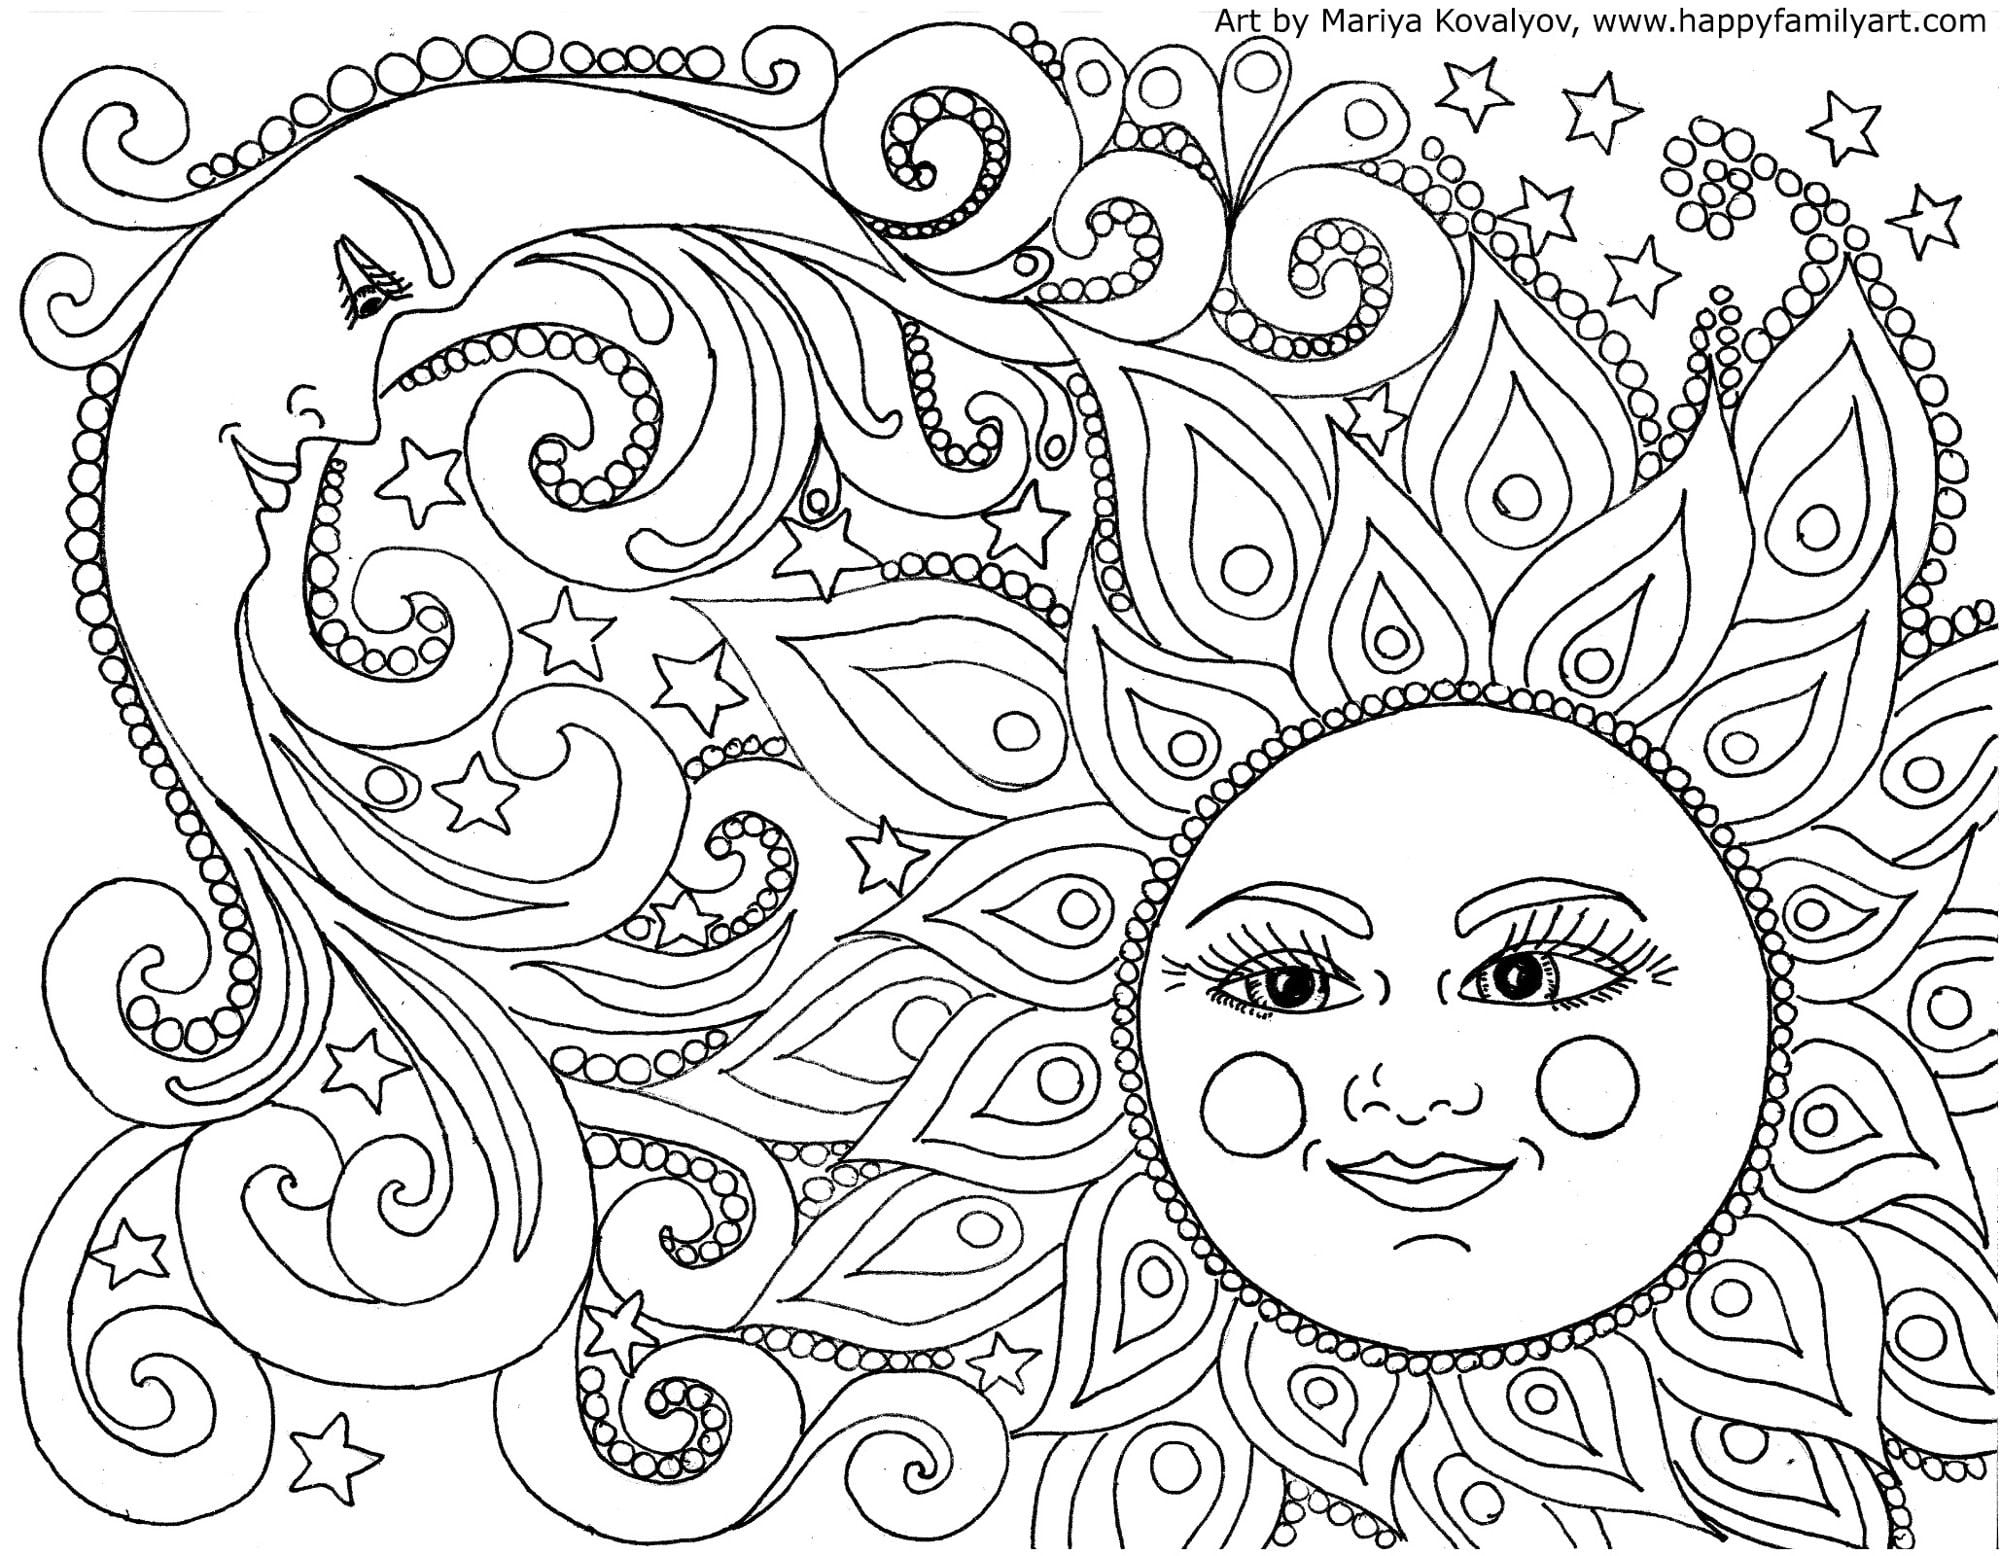 I Made Many Great Fun And Original Coloring Pages Color Your To